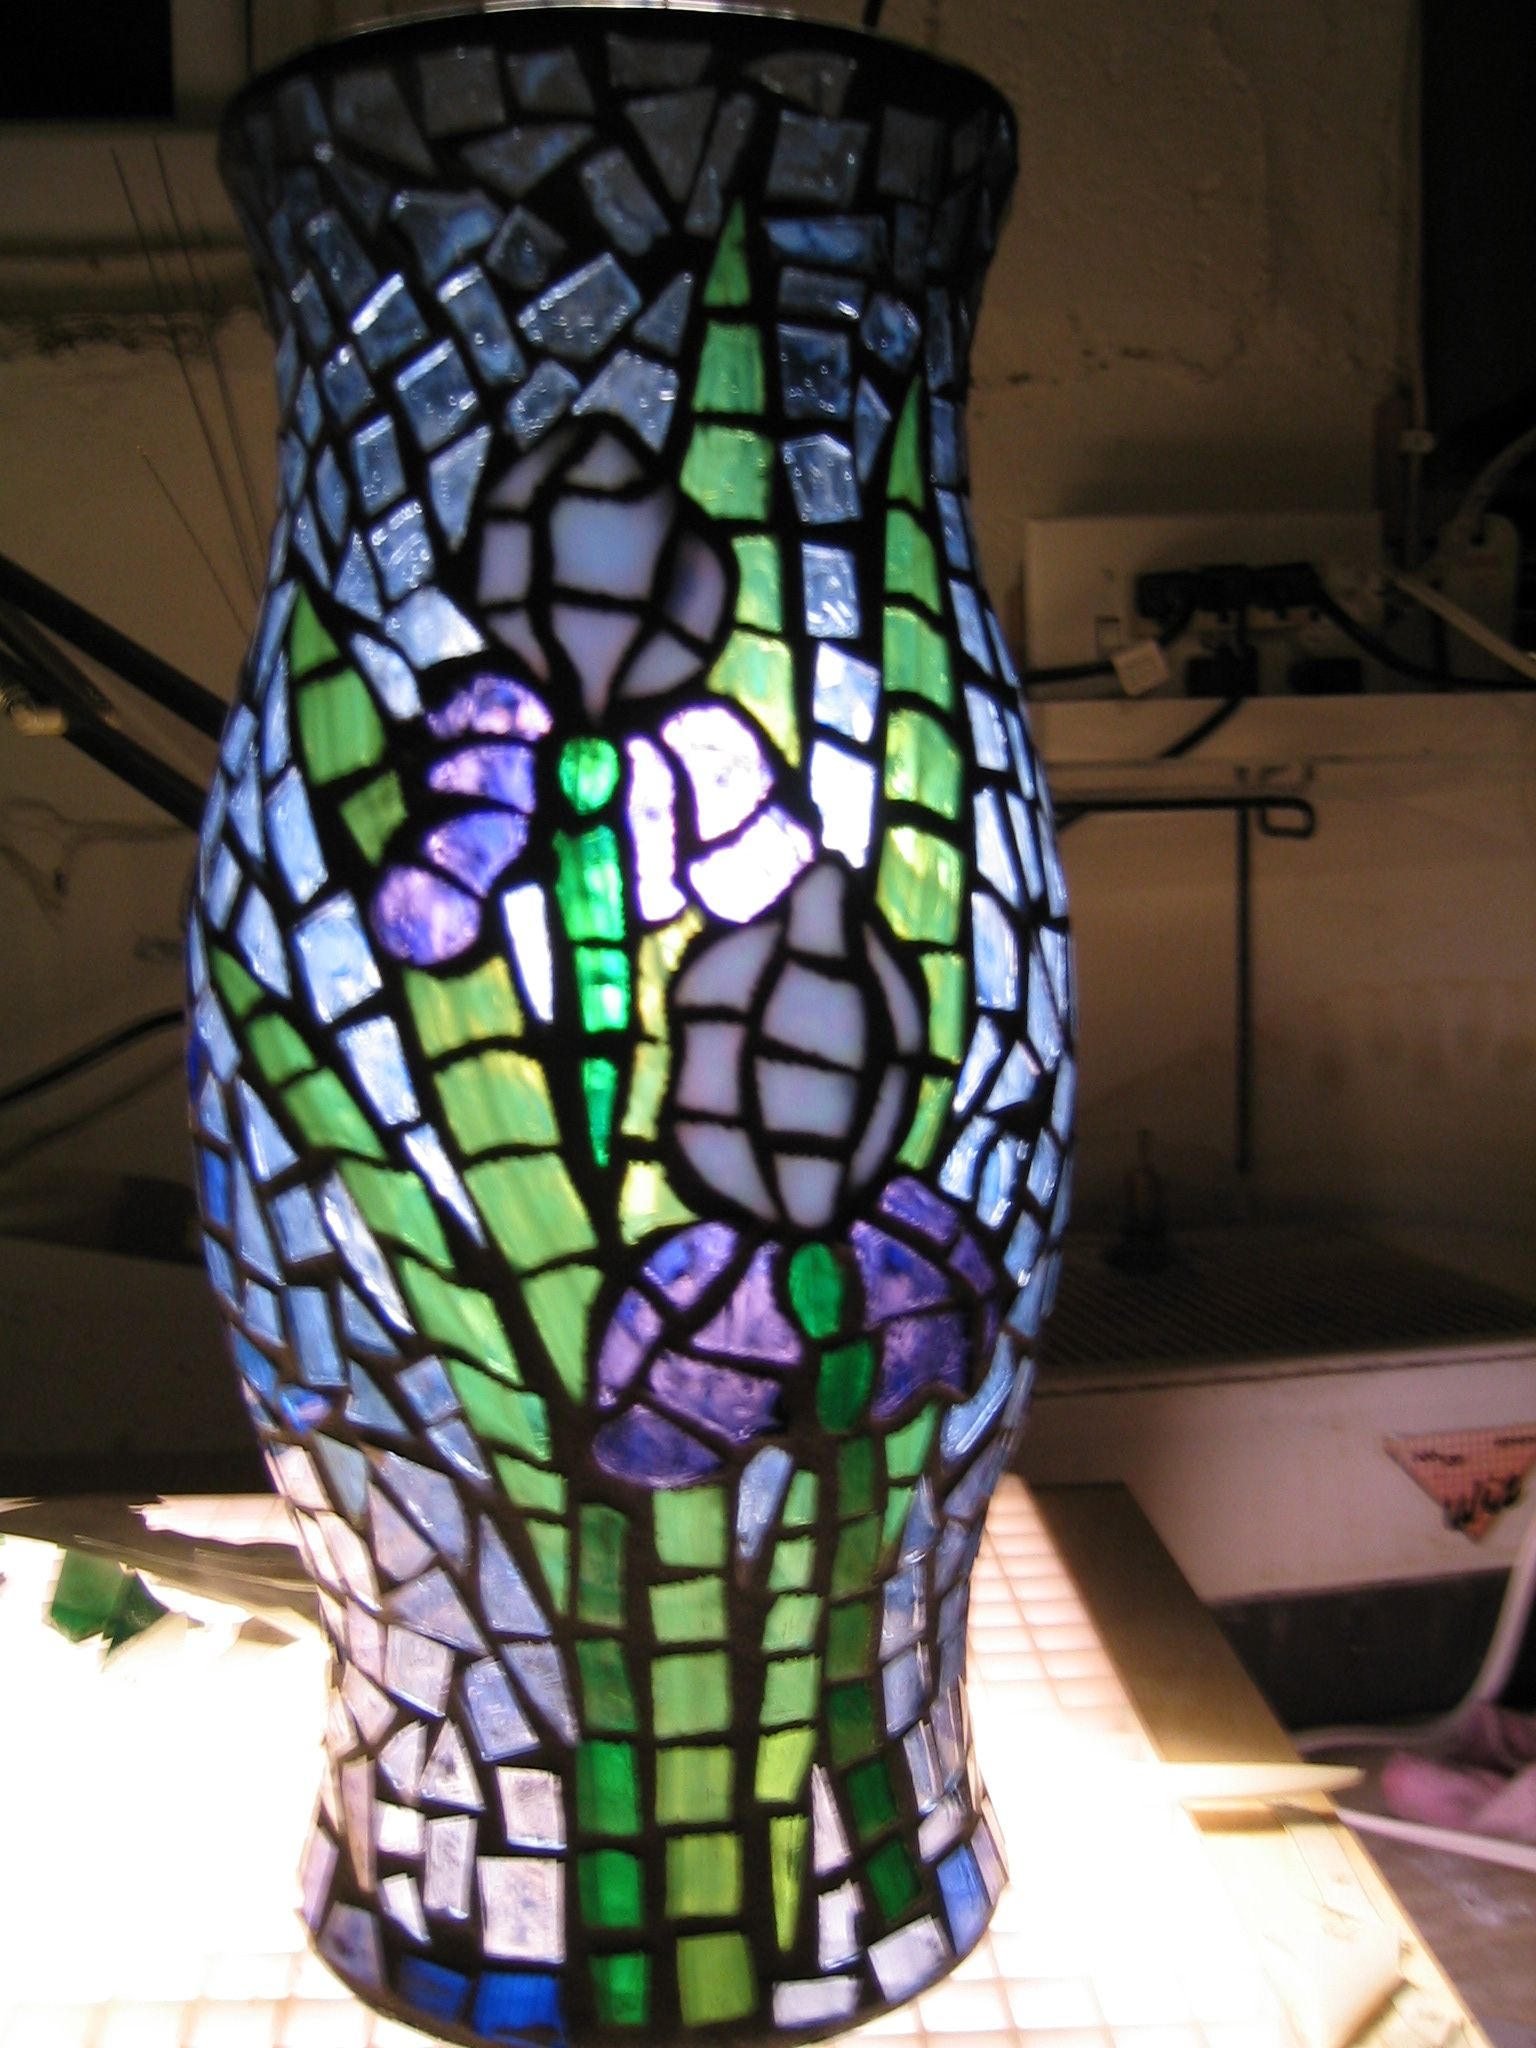 Iris stained glass applique' mosaic lamp shade | My Style ...